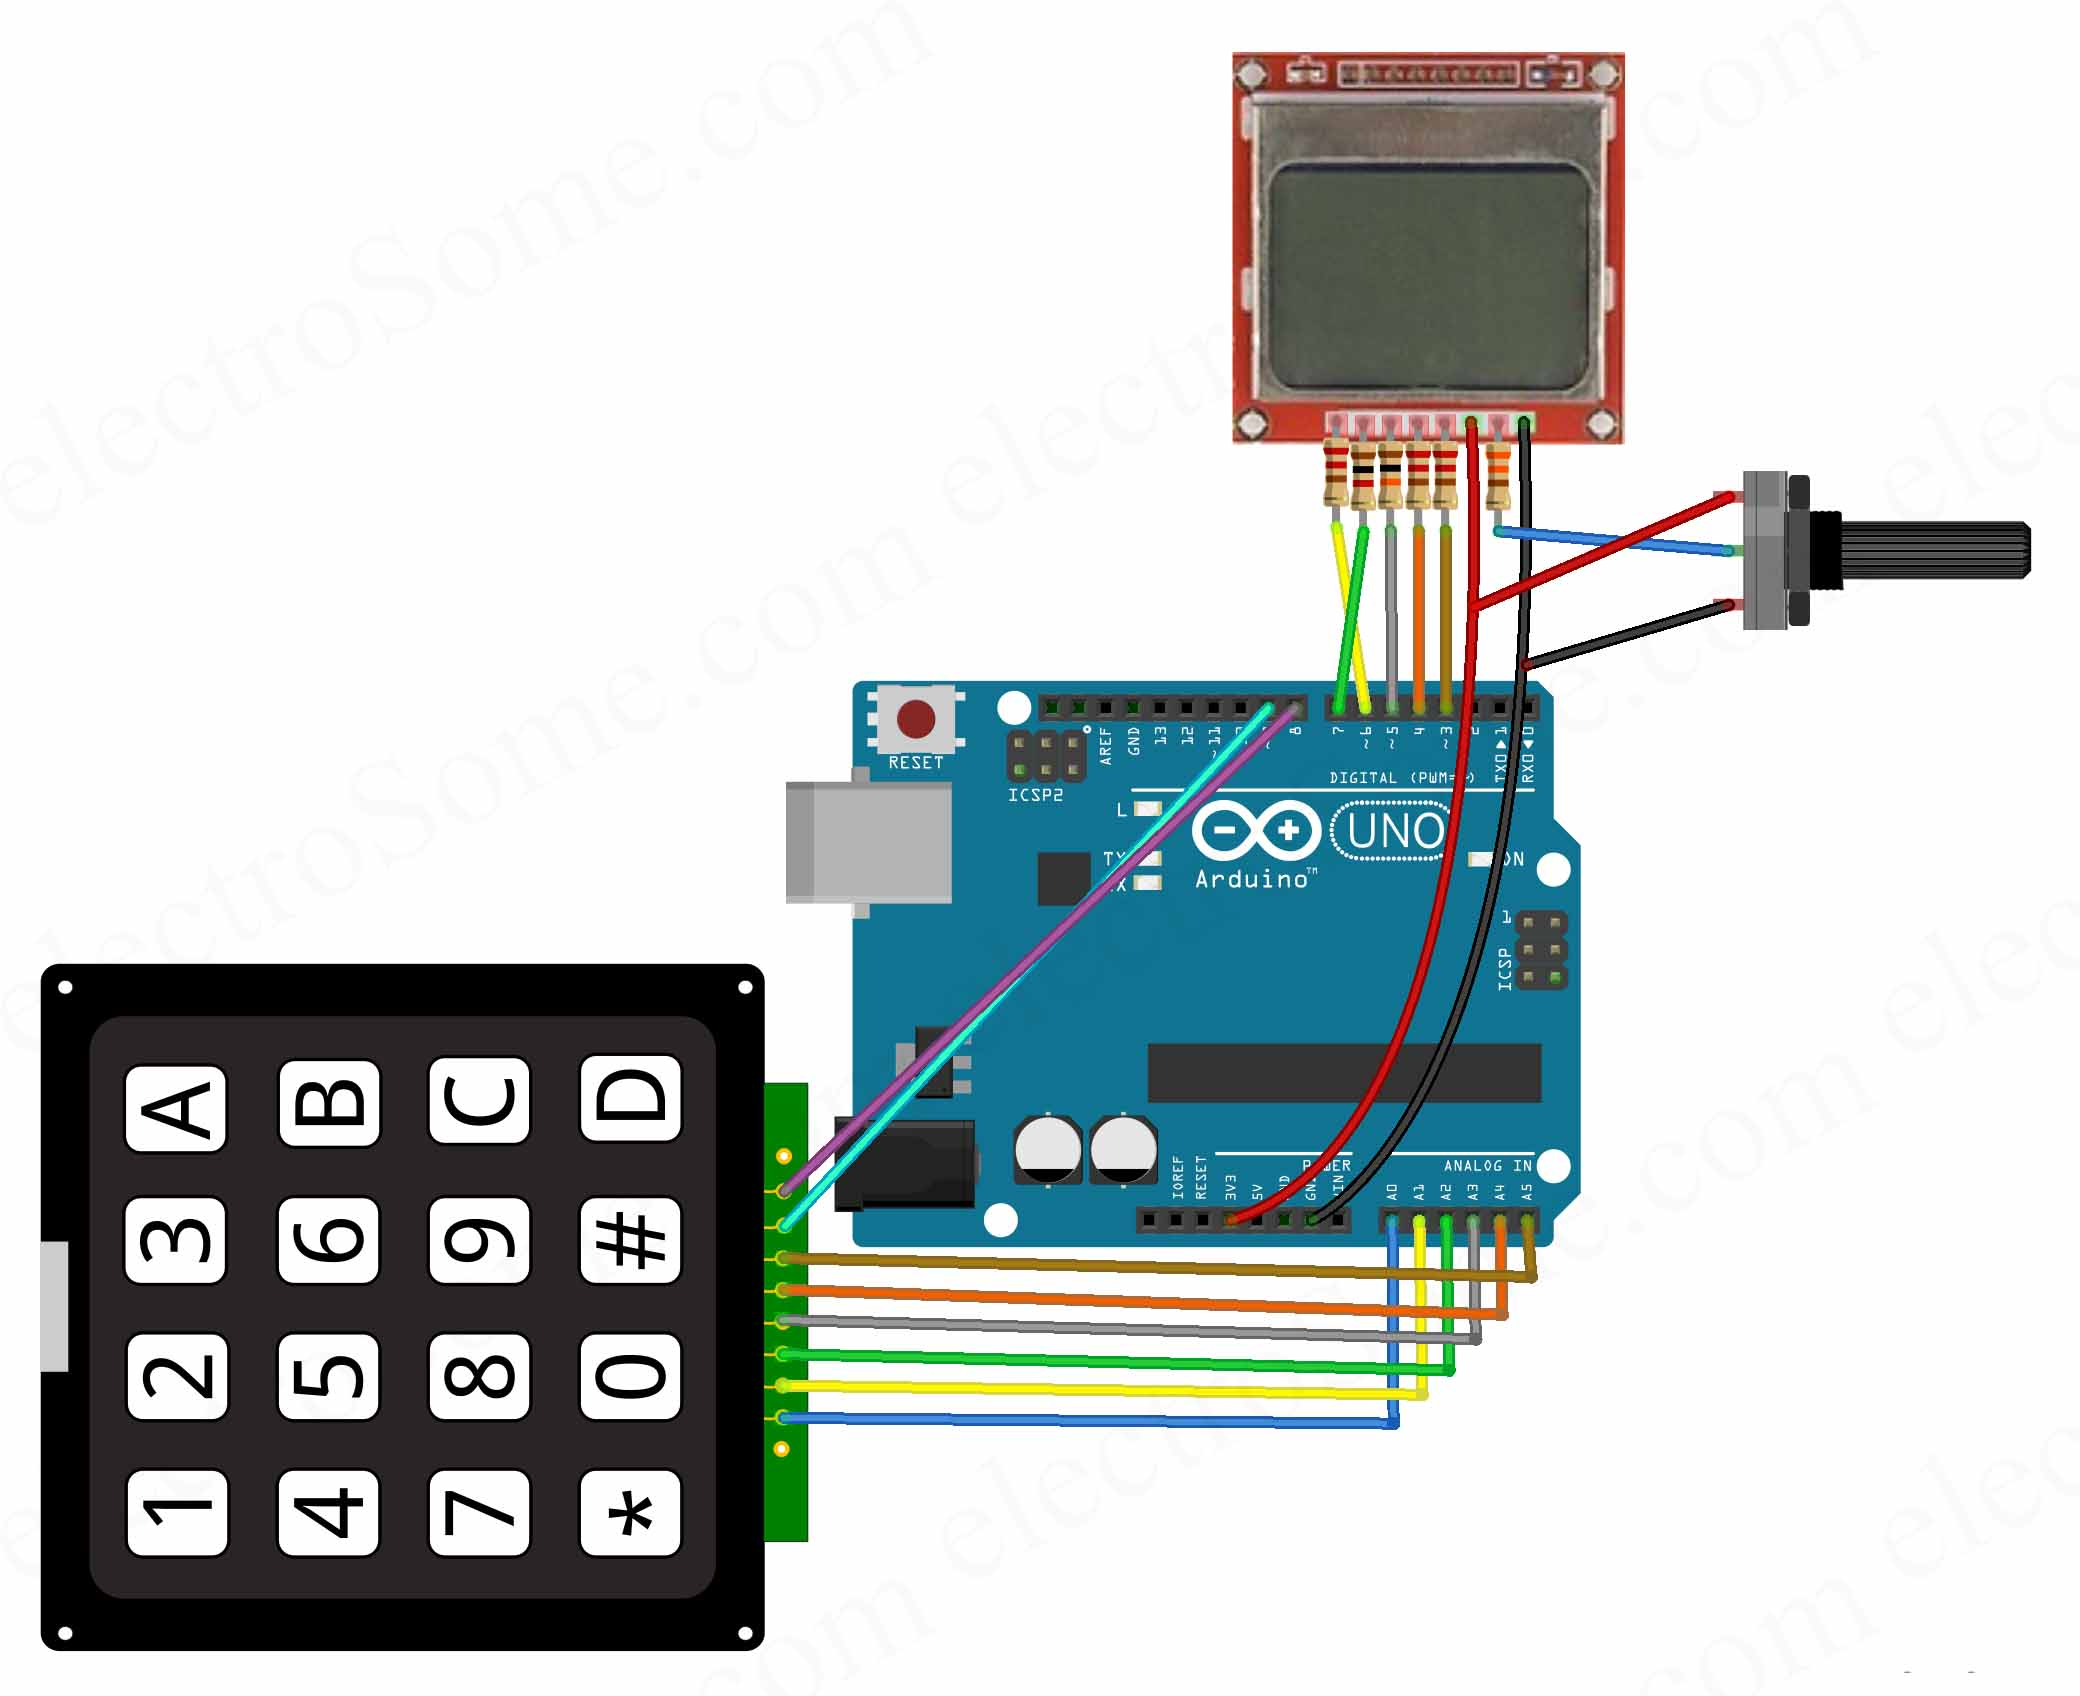 Calculator using arduino uno hobby project circuit diagram calculator using arduino uno circuit diagram ccuart Images